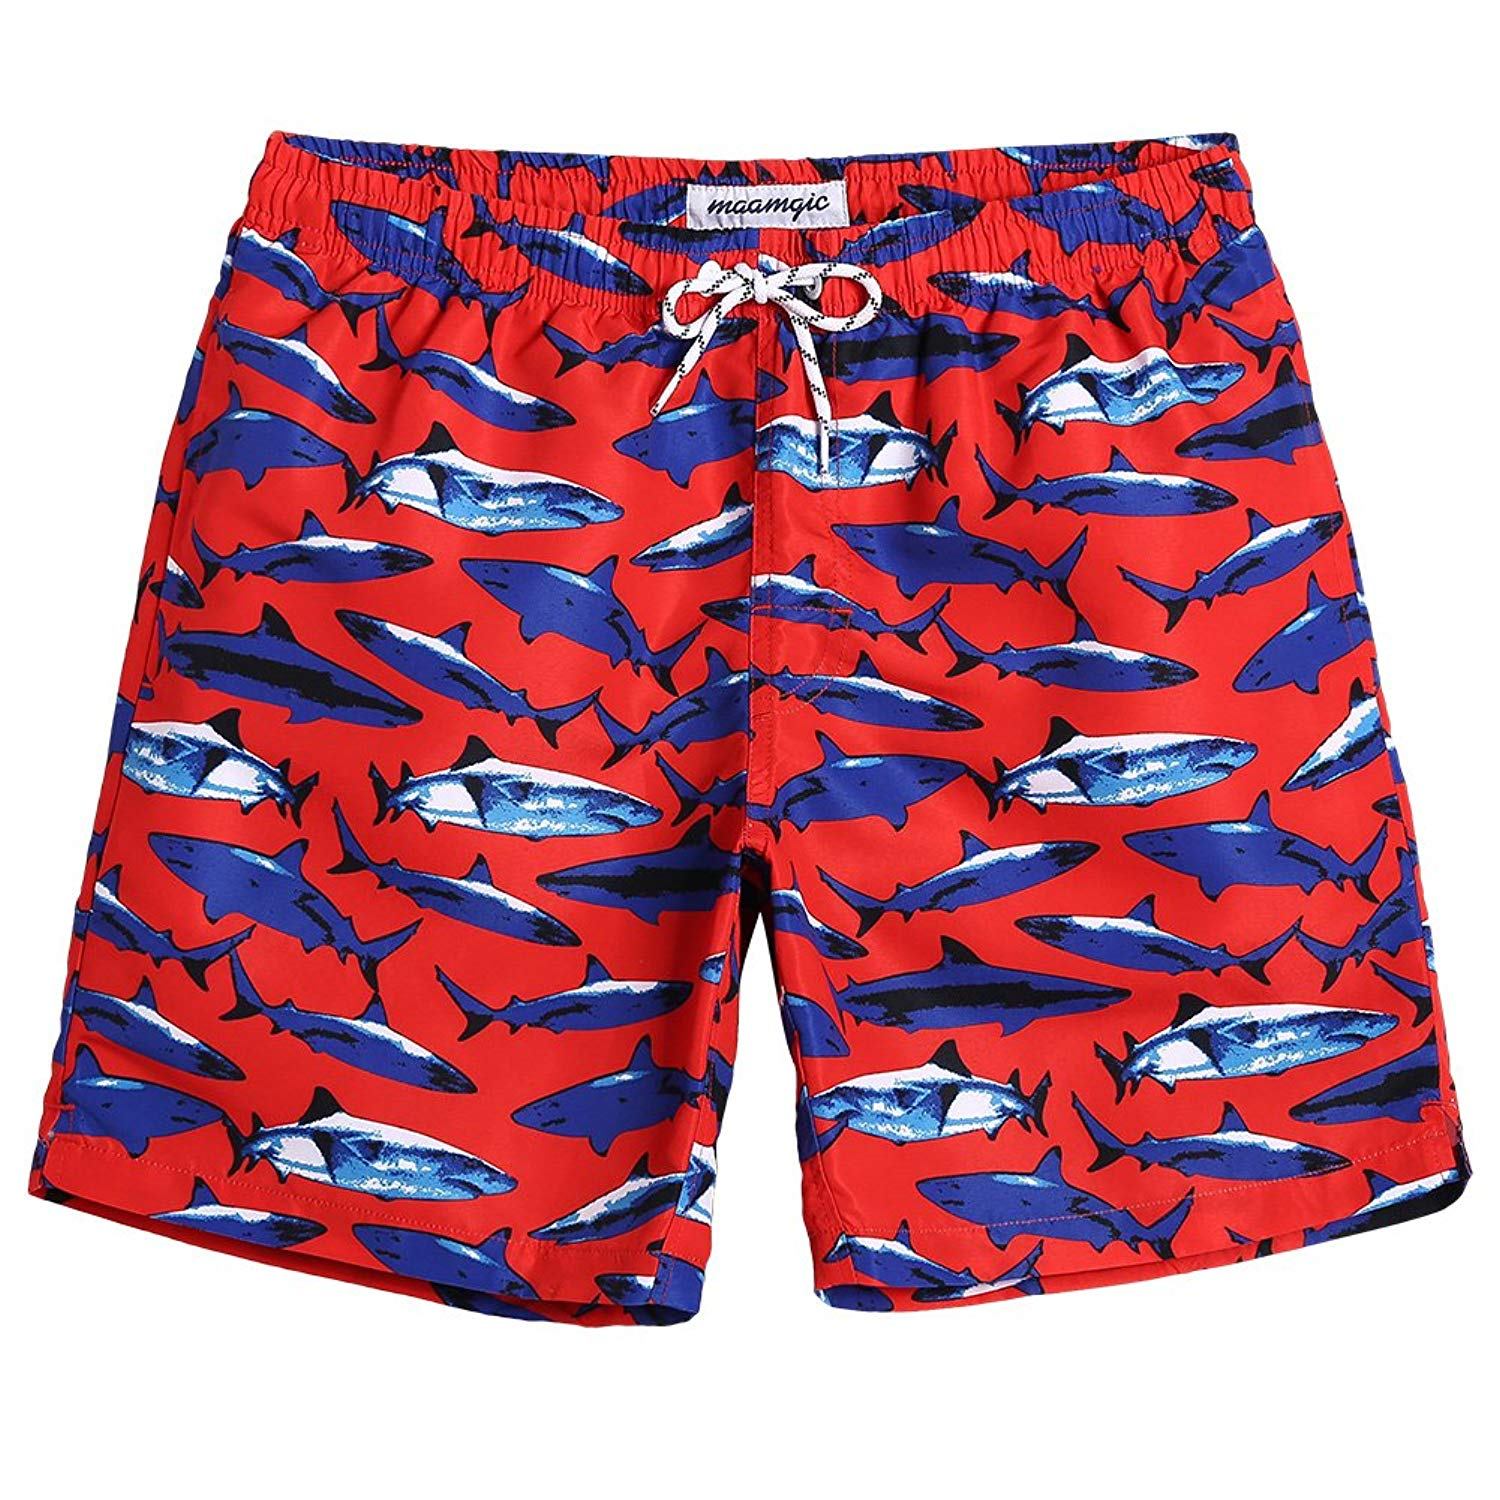 8f8d5ec811 Get Quotations · MaaMgic Mens Shark Swim Trunks with Mesh Lining Quick Dry Swim  Trunks Bathing Suits 18111859130